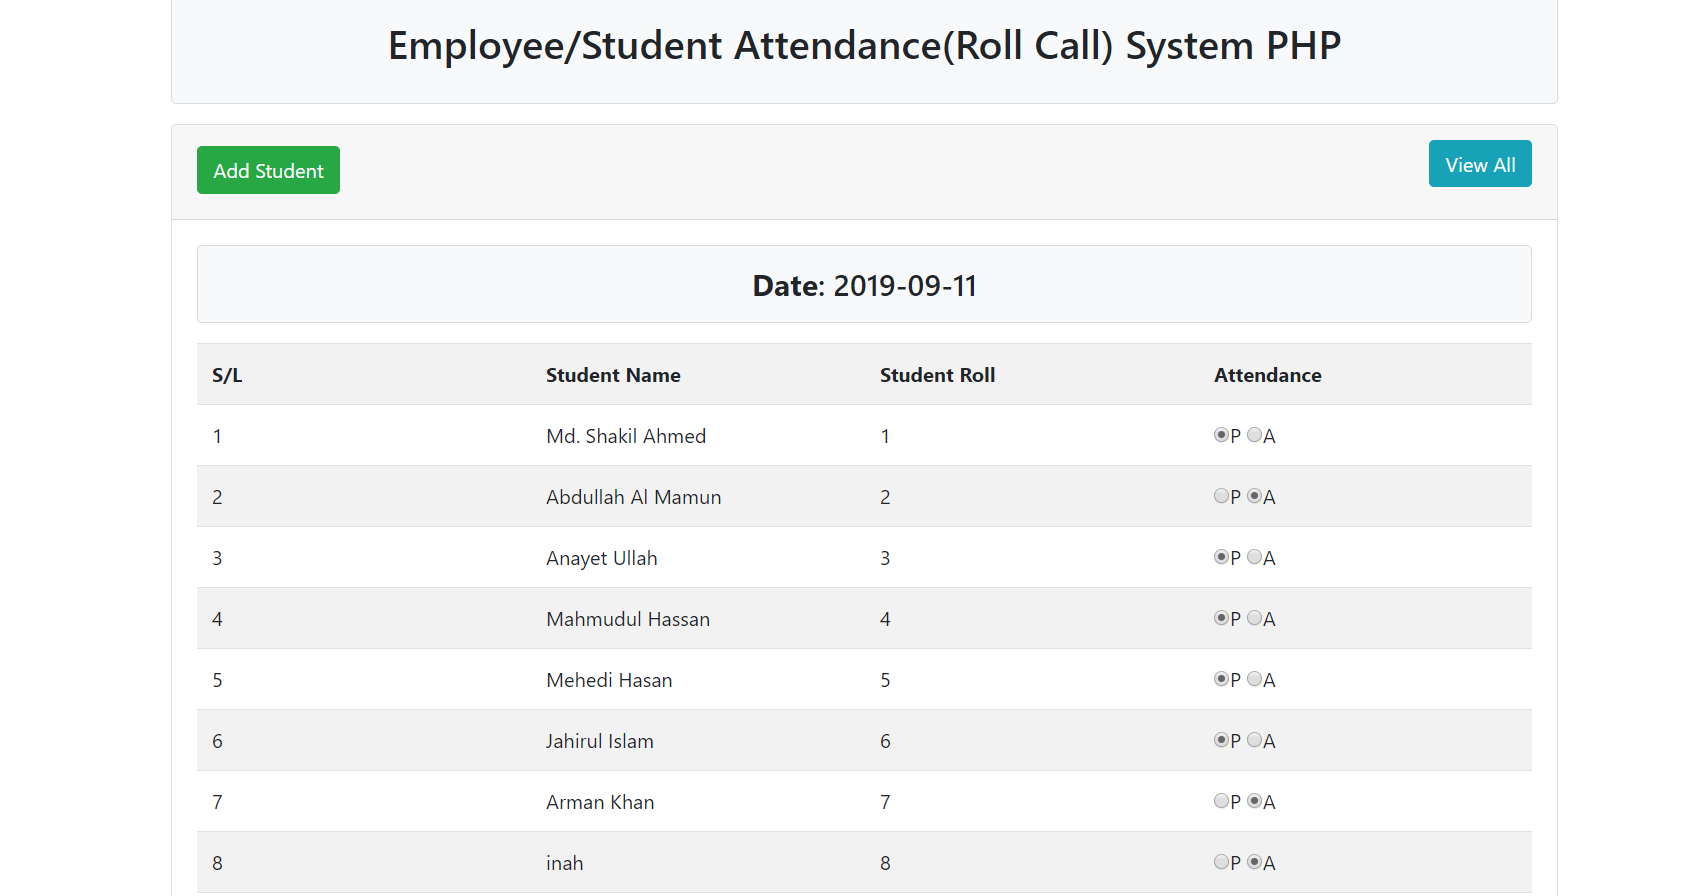 image of Student/Employee Attendance System